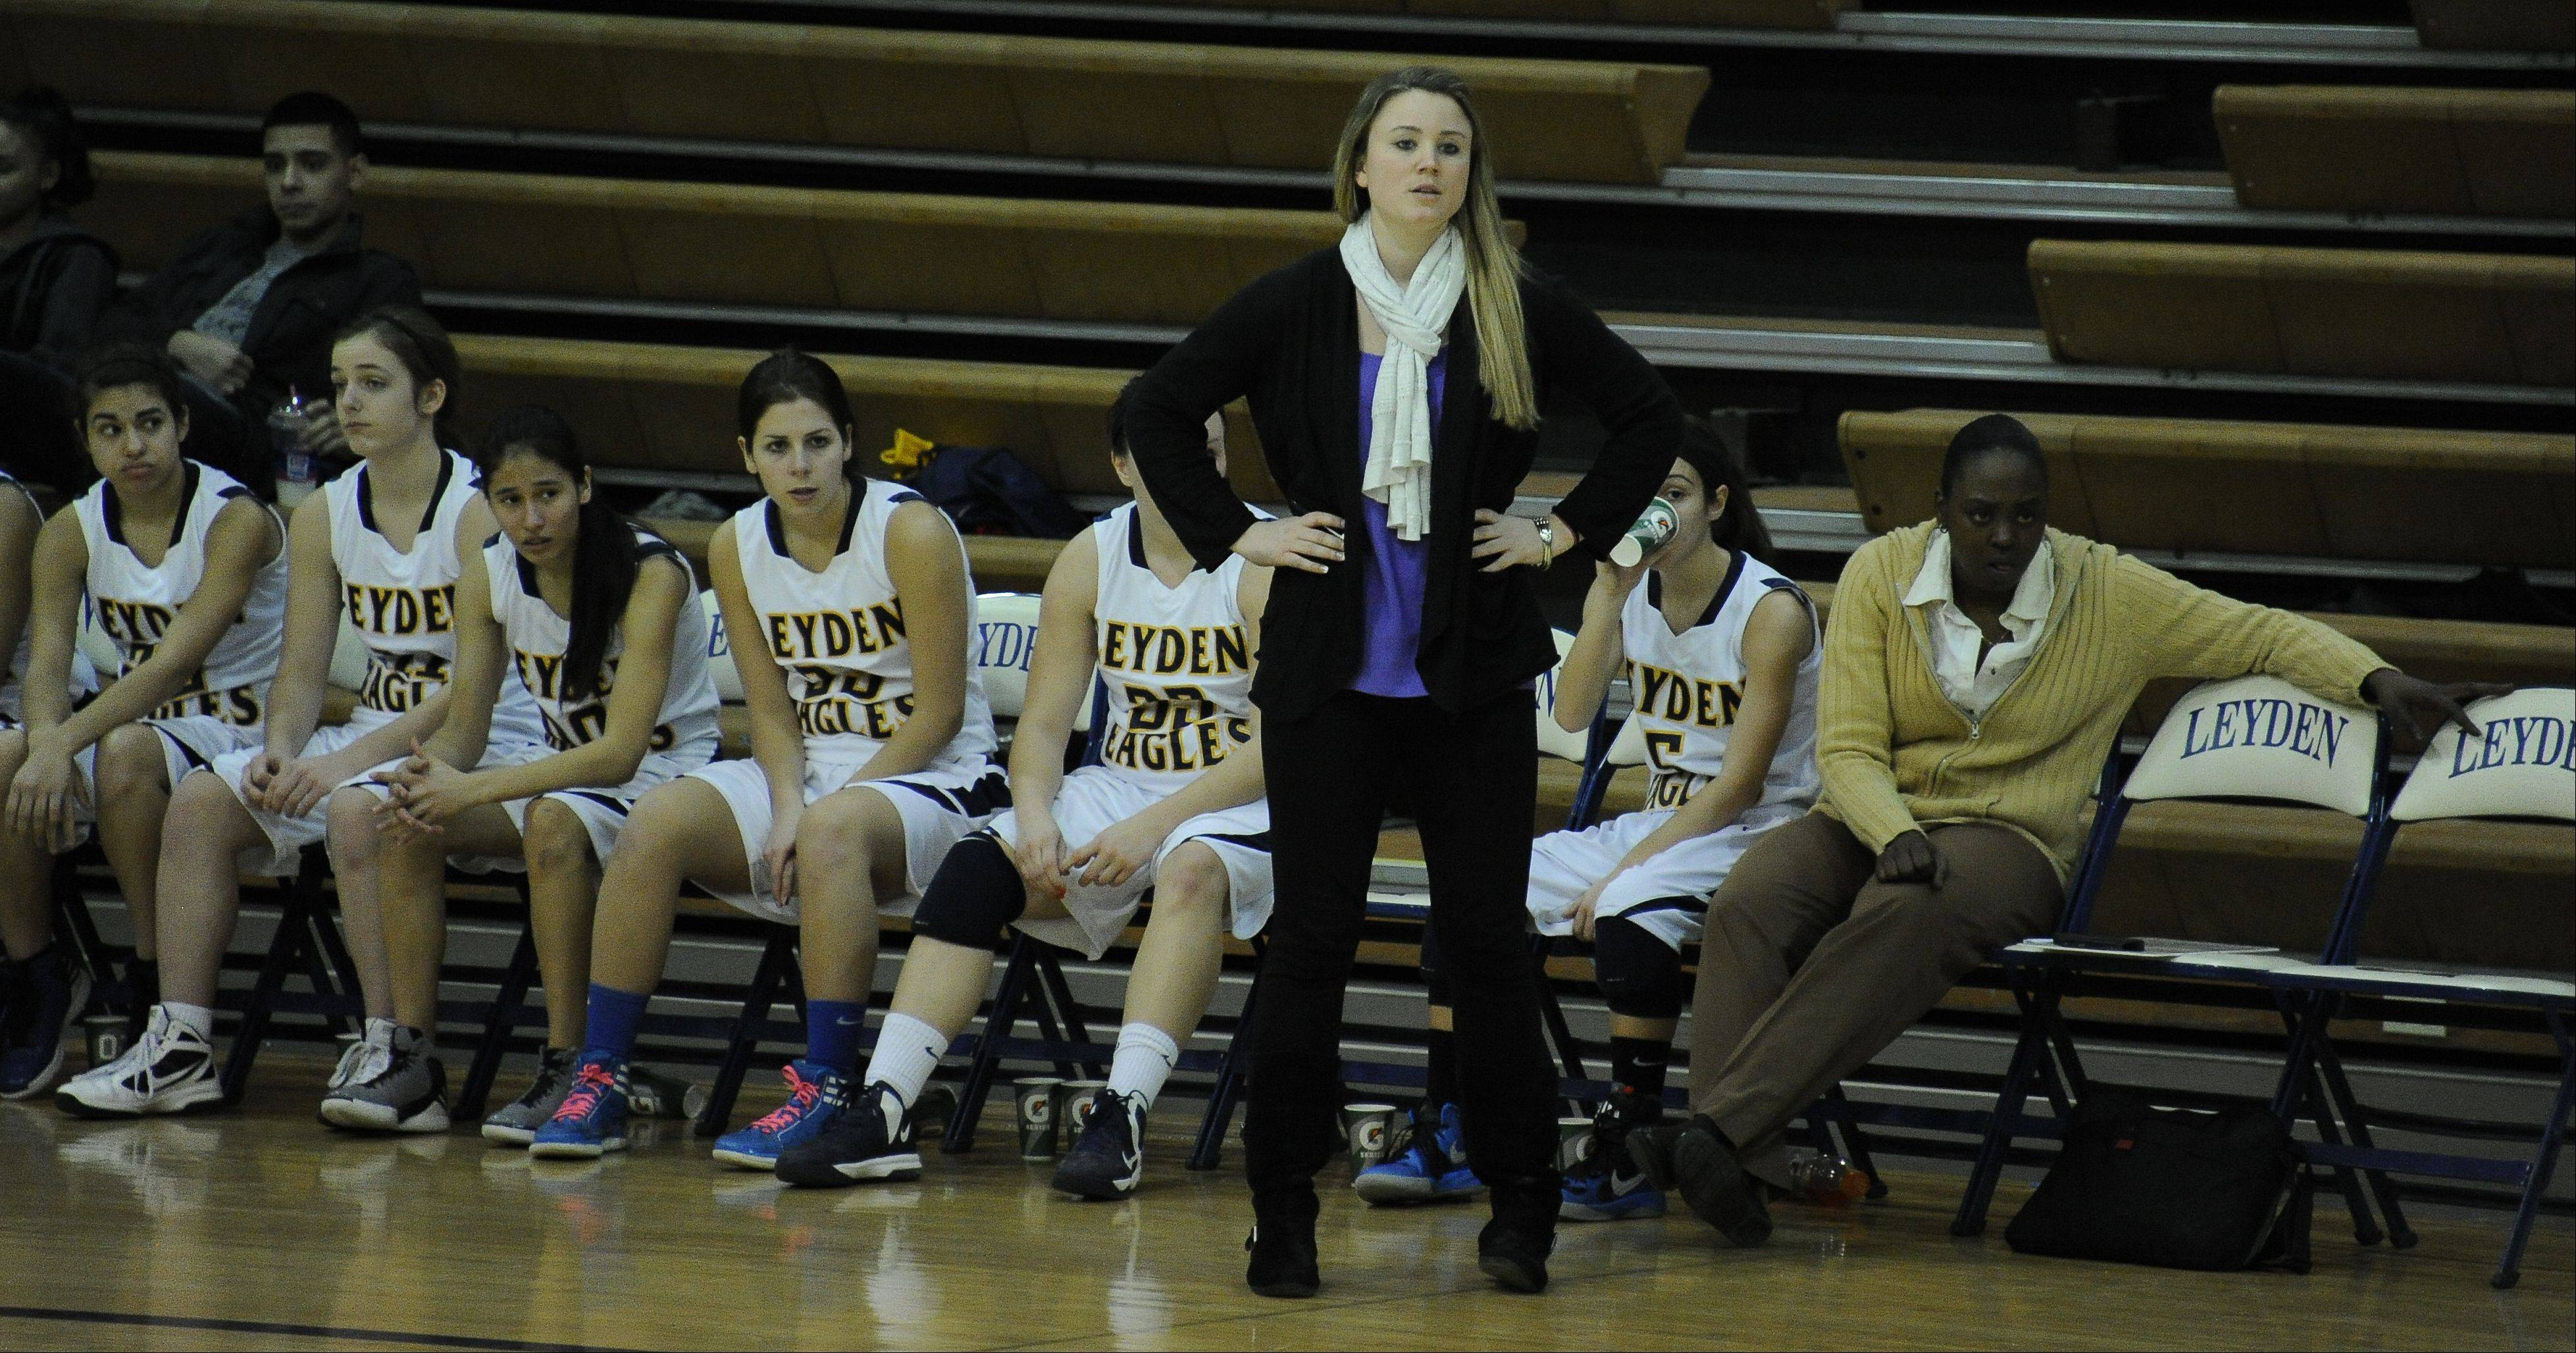 Images from West Leyden vs. Morton girls basketball game on January 4th in Northlake.